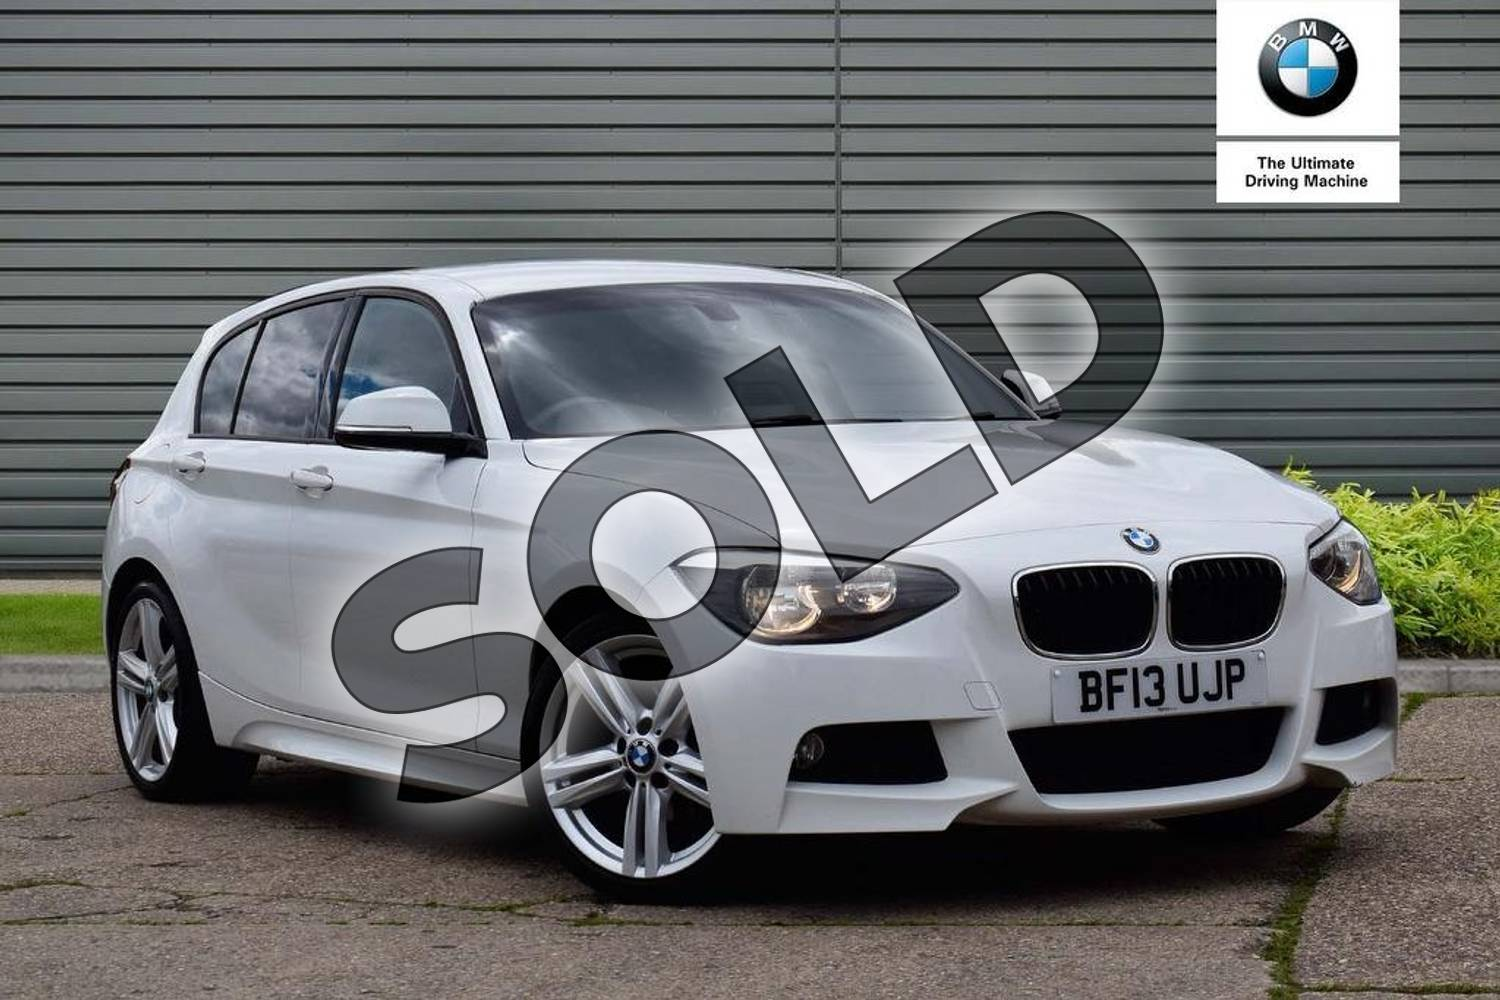 2013 BMW 1 Series Hatchback 116i M Sport 5dr in Alpine White at Listers Boston (BMW)